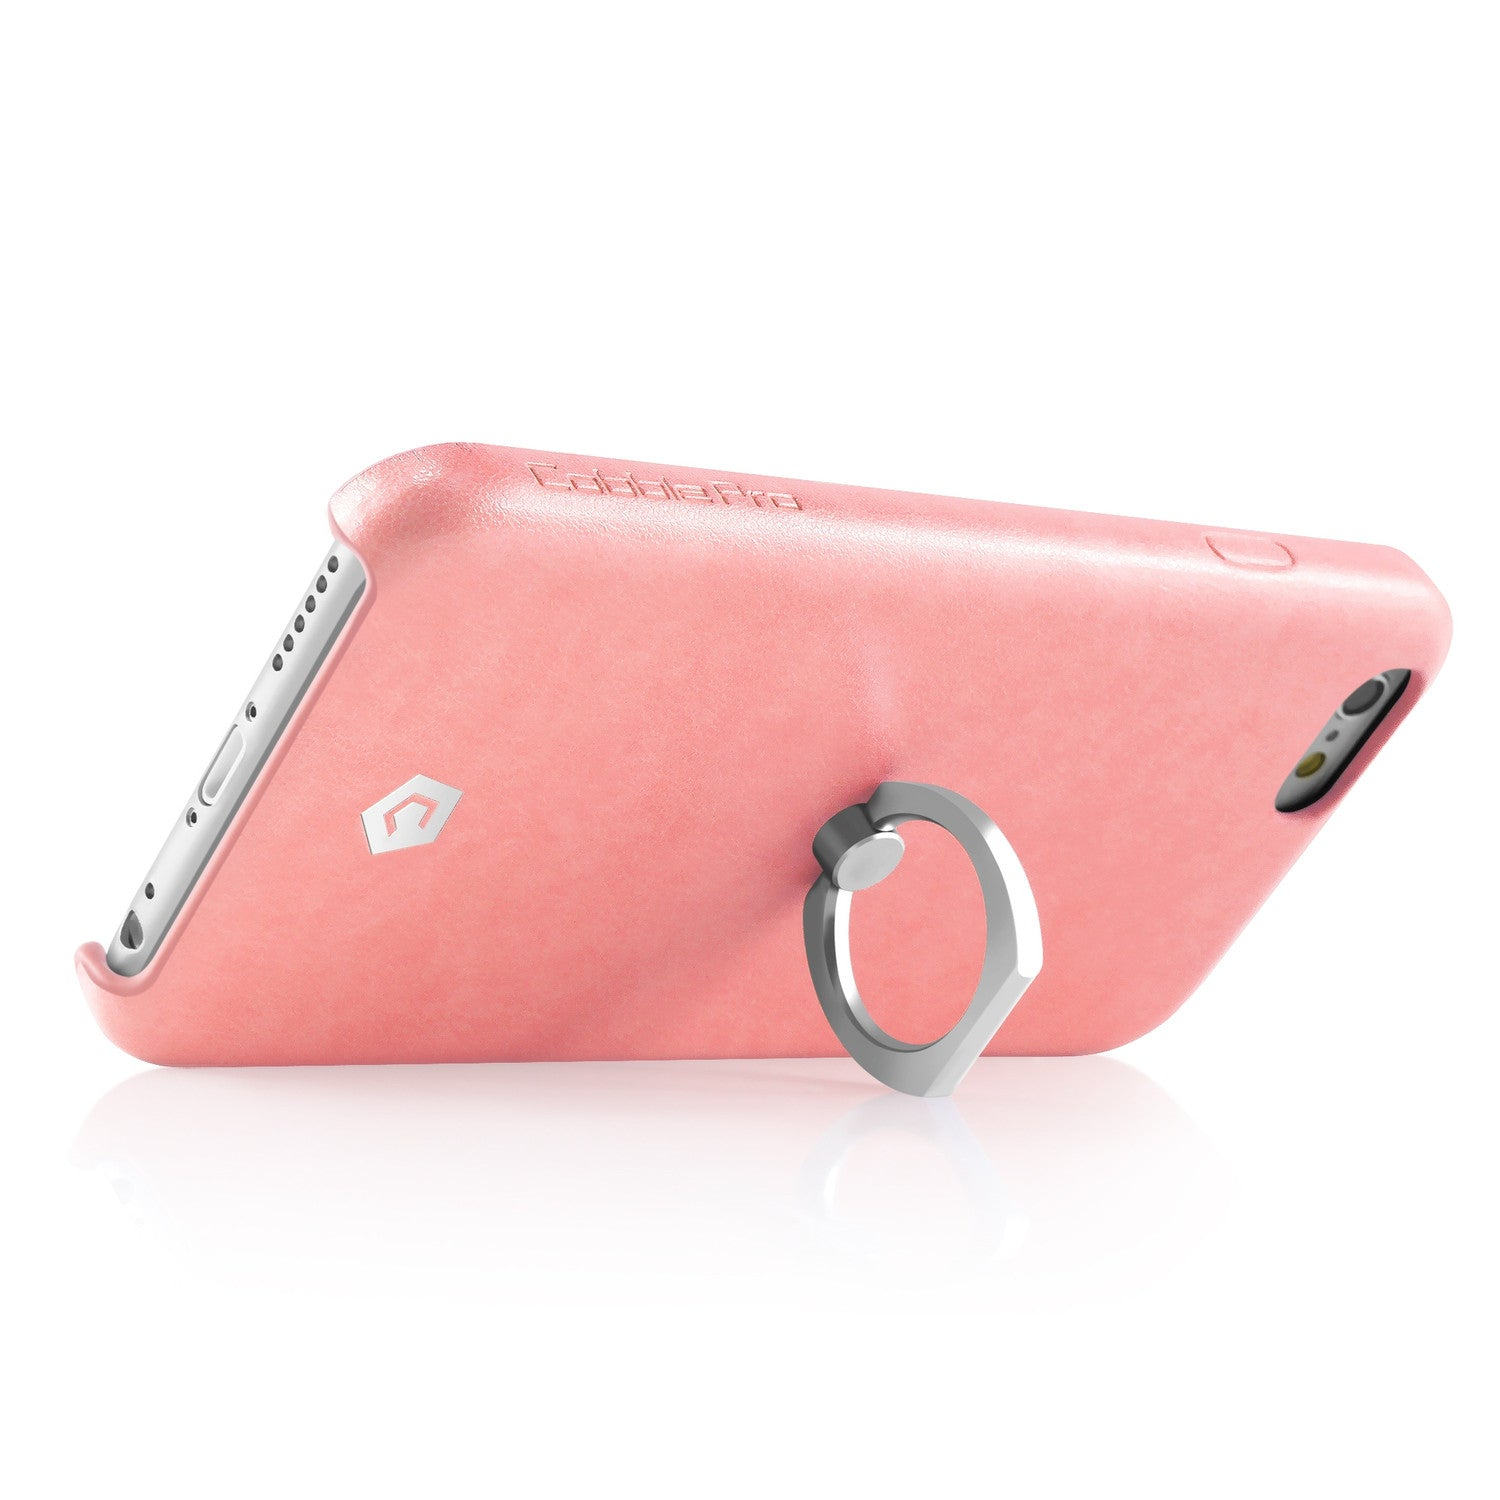 check out 51357 b0dce Pink Leather Textured Back Case with Ring Stand for iPhone 6 Plus / 6s Plus